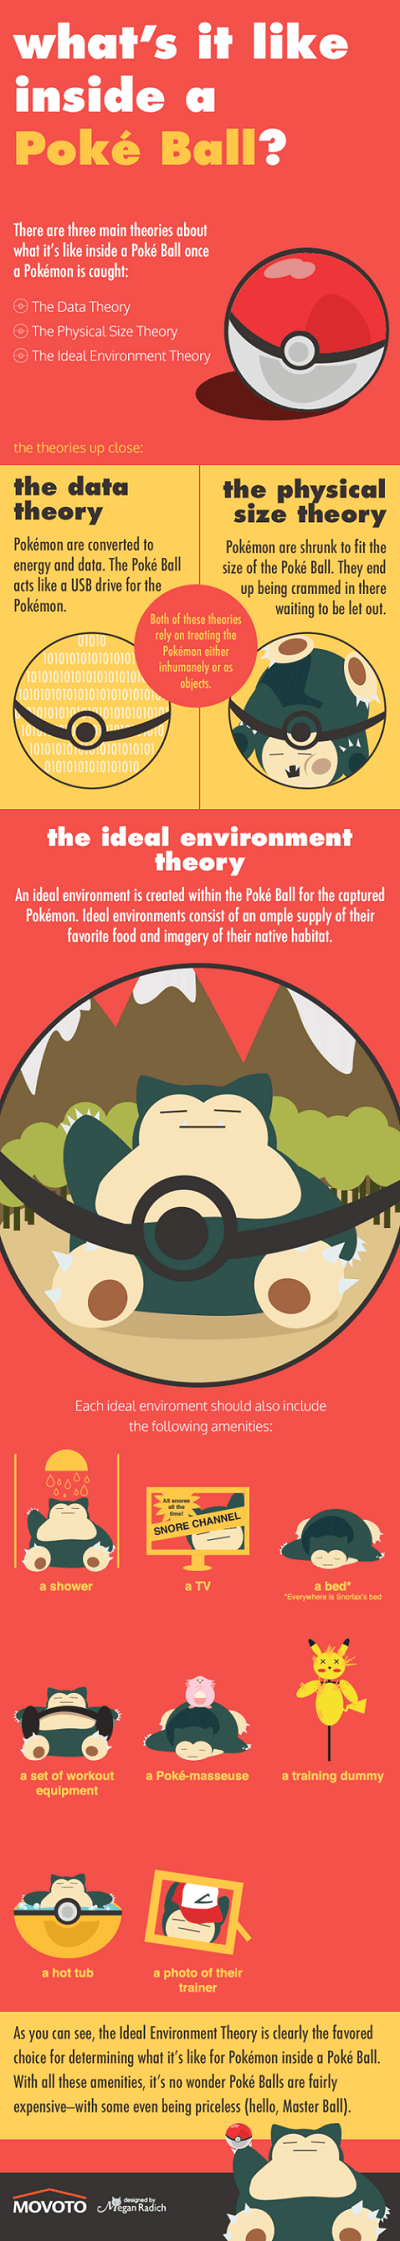 Pokémon,snorlax,awesome,pokeball